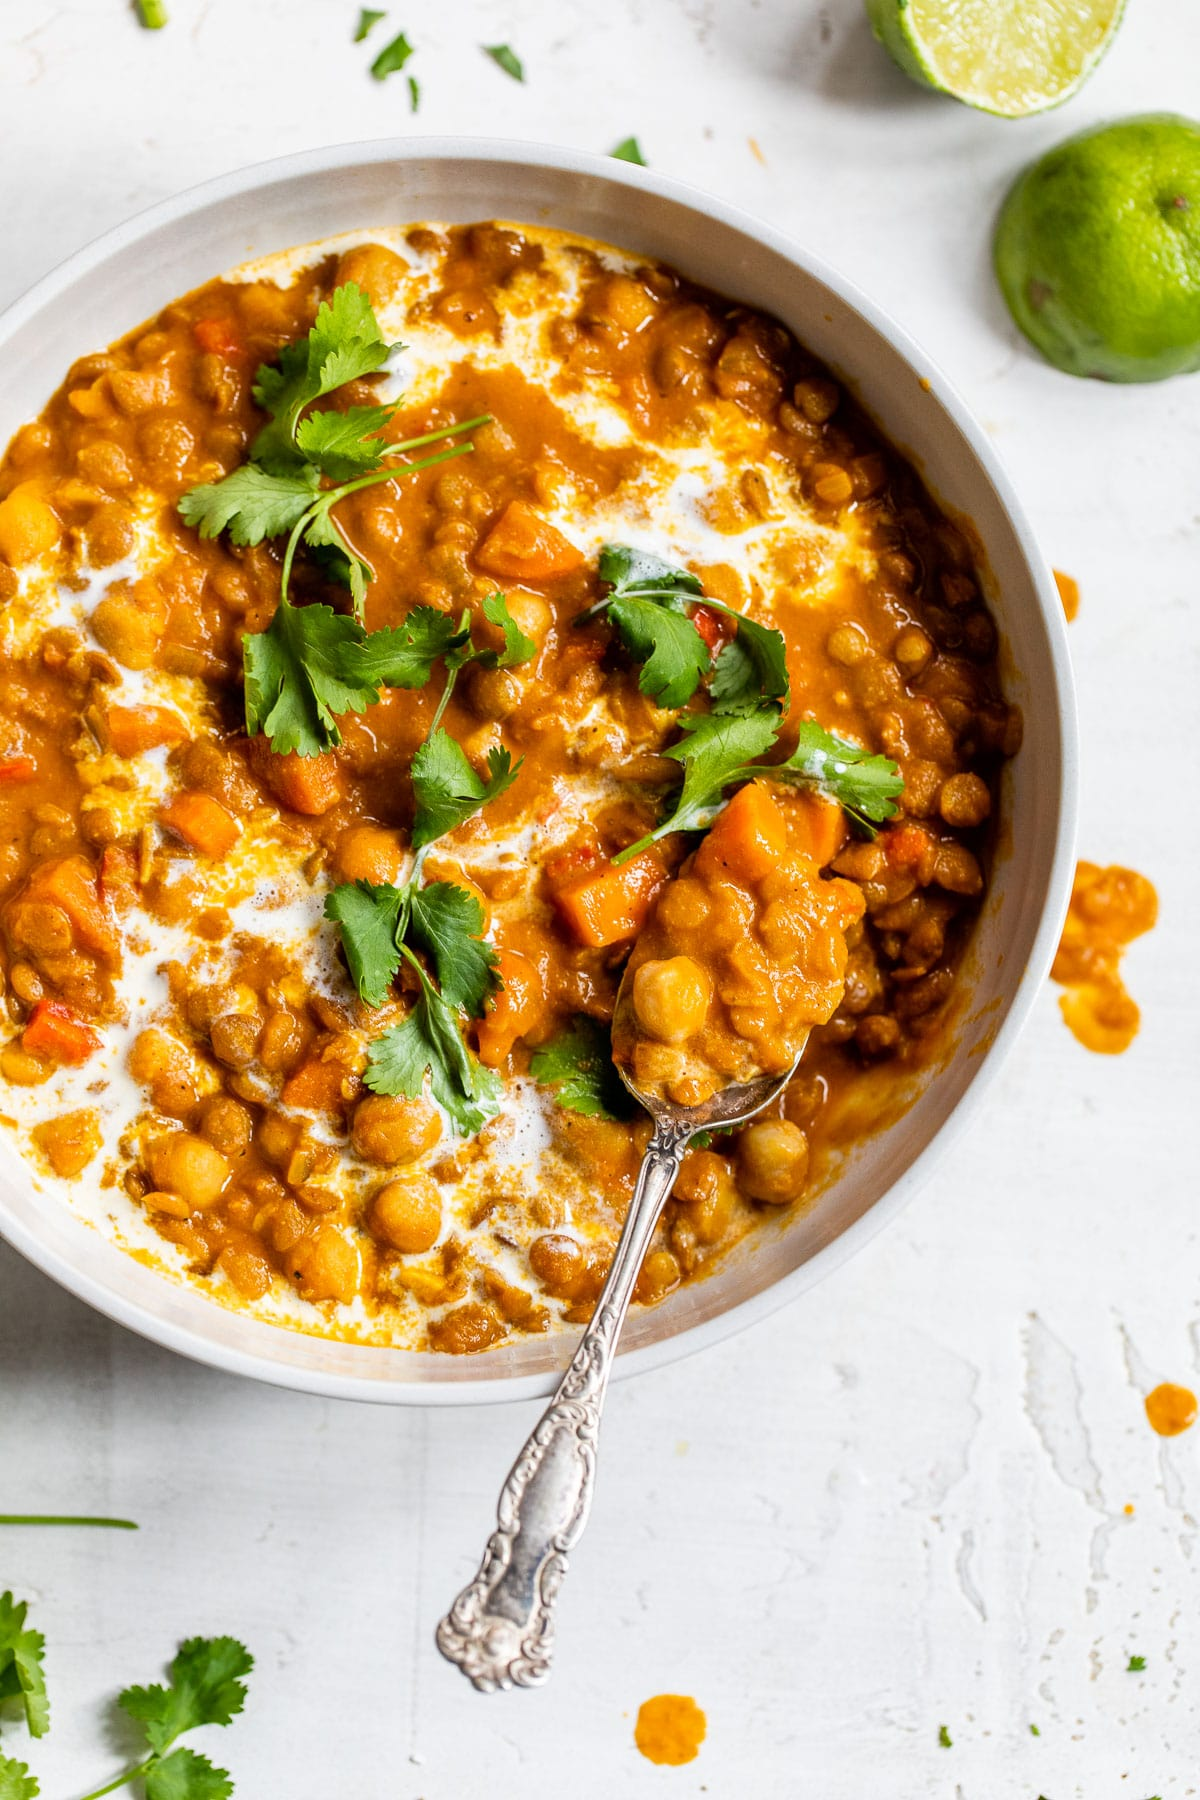 chickpeas and lentils in a bowl topped with cilantro